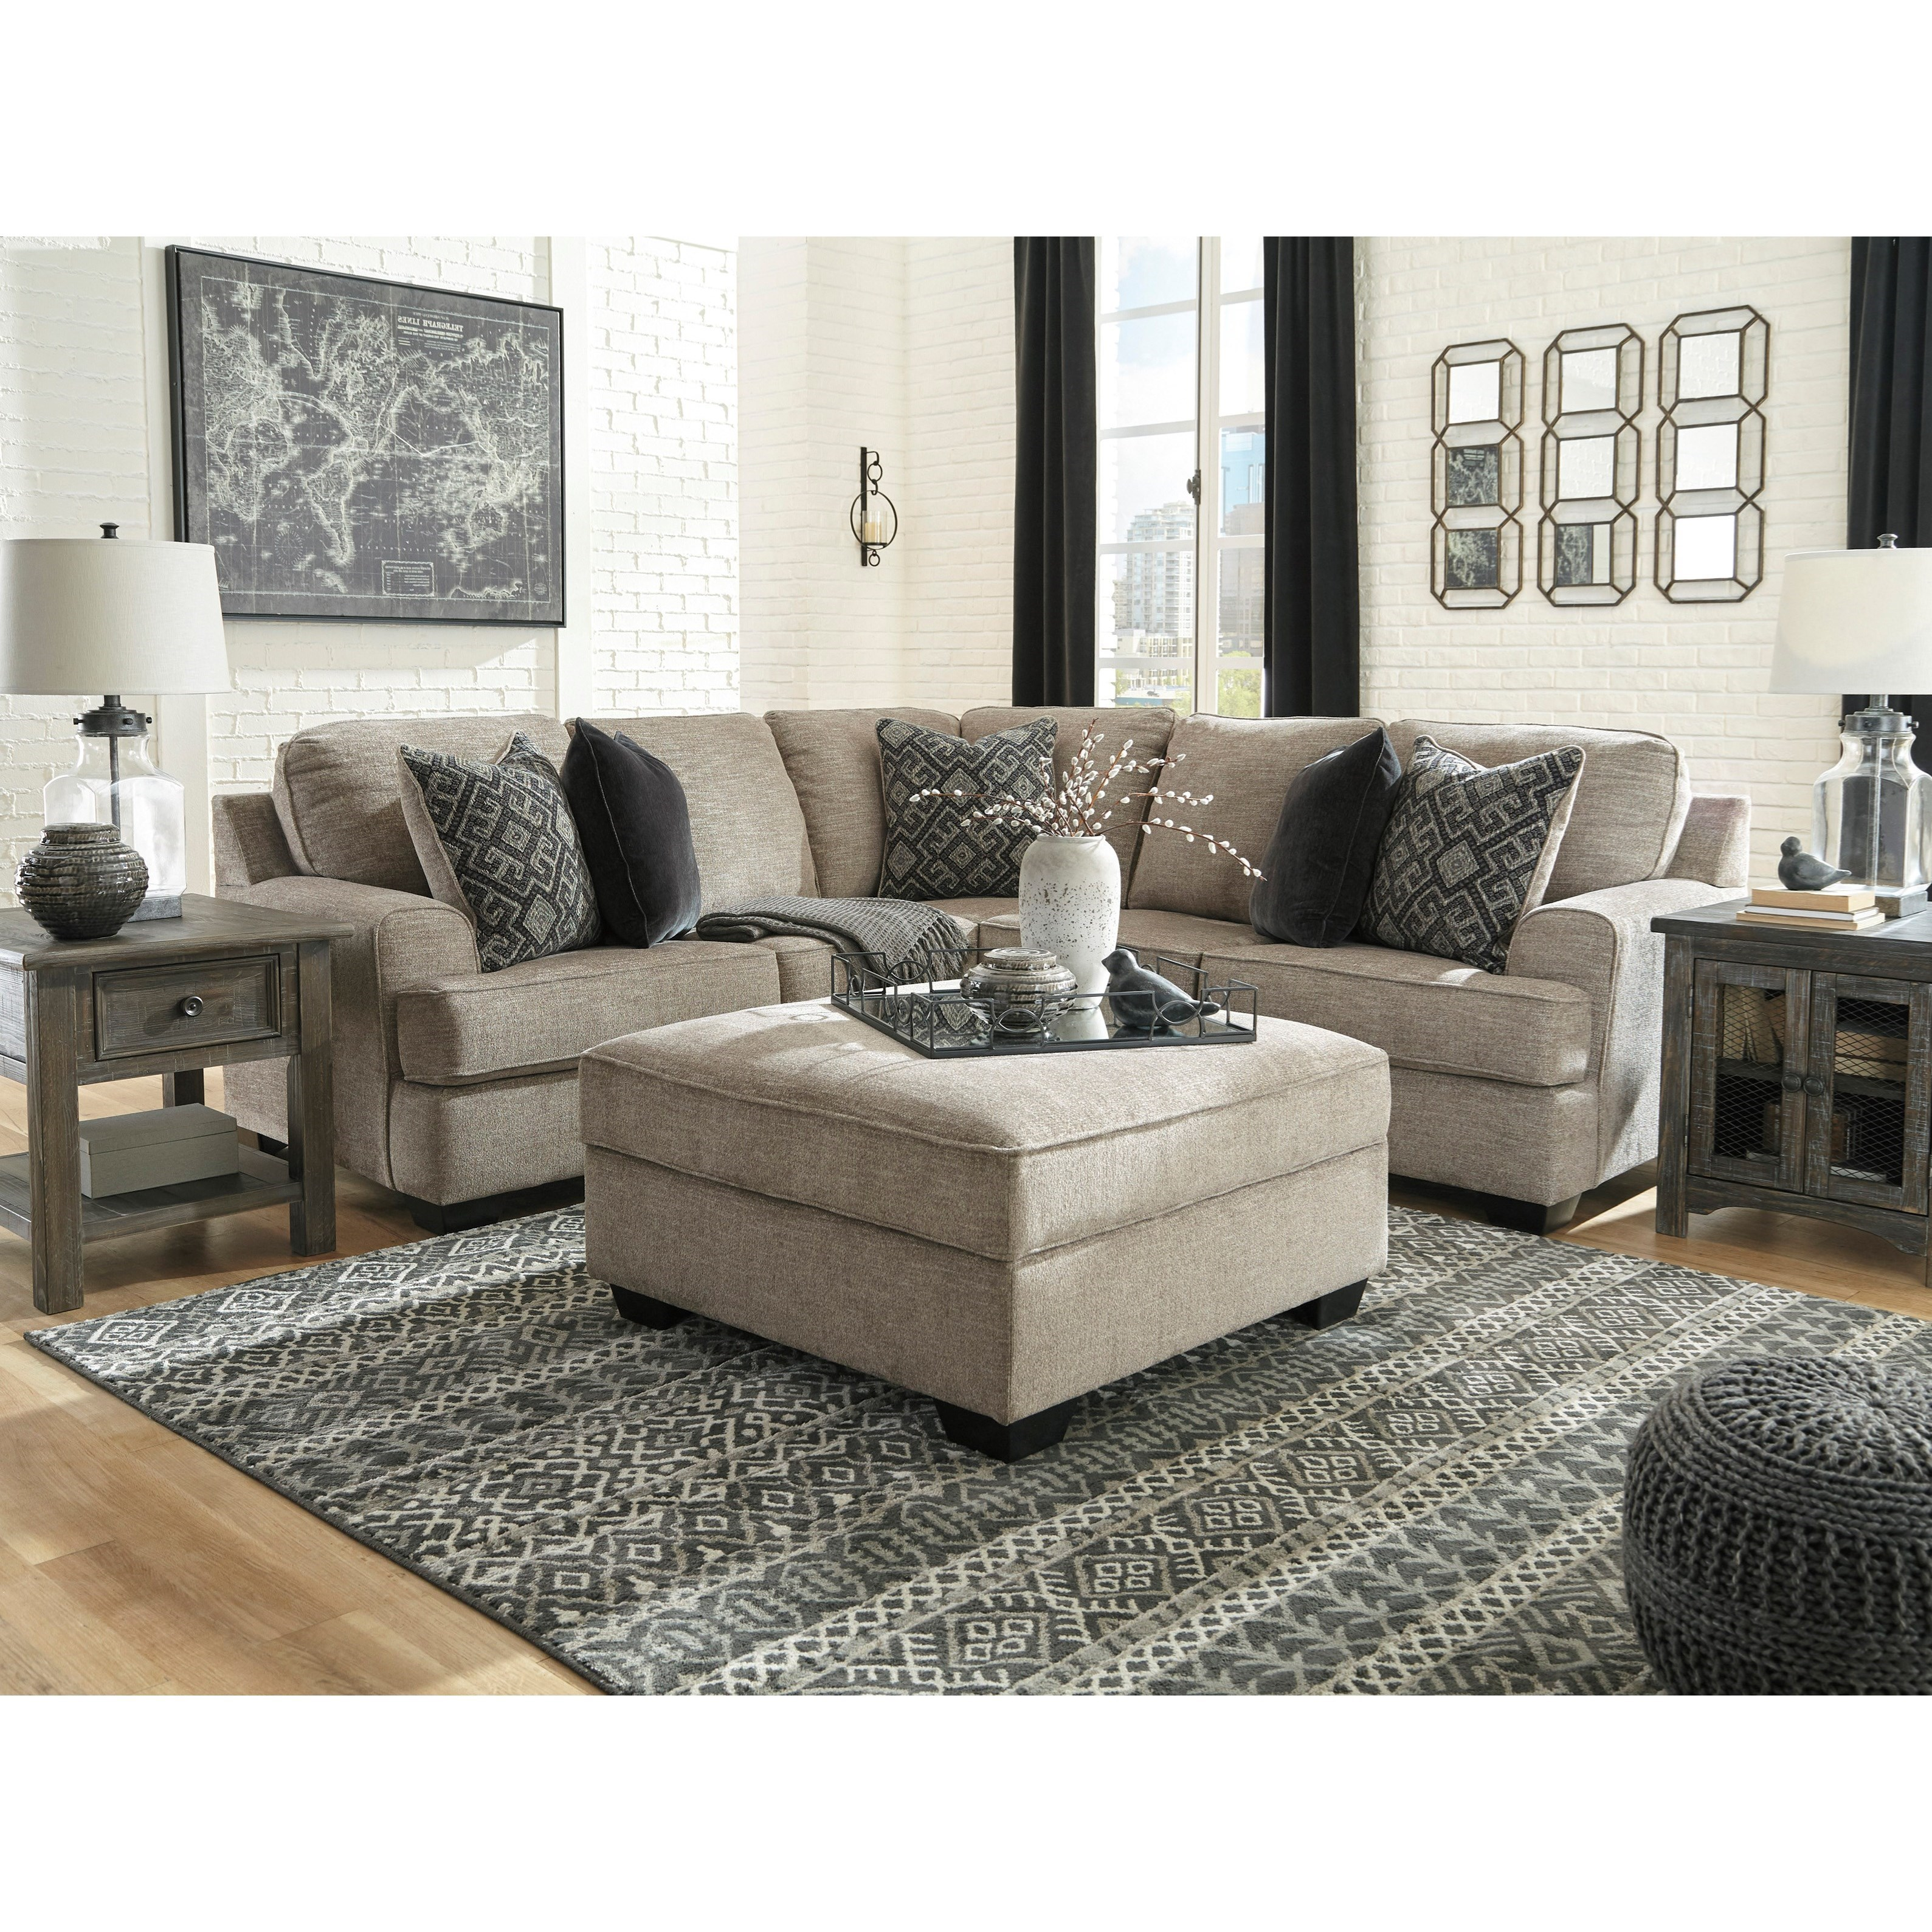 Bovarian Stationary Living Room Group by Ashley (Signature Design) at Johnny Janosik